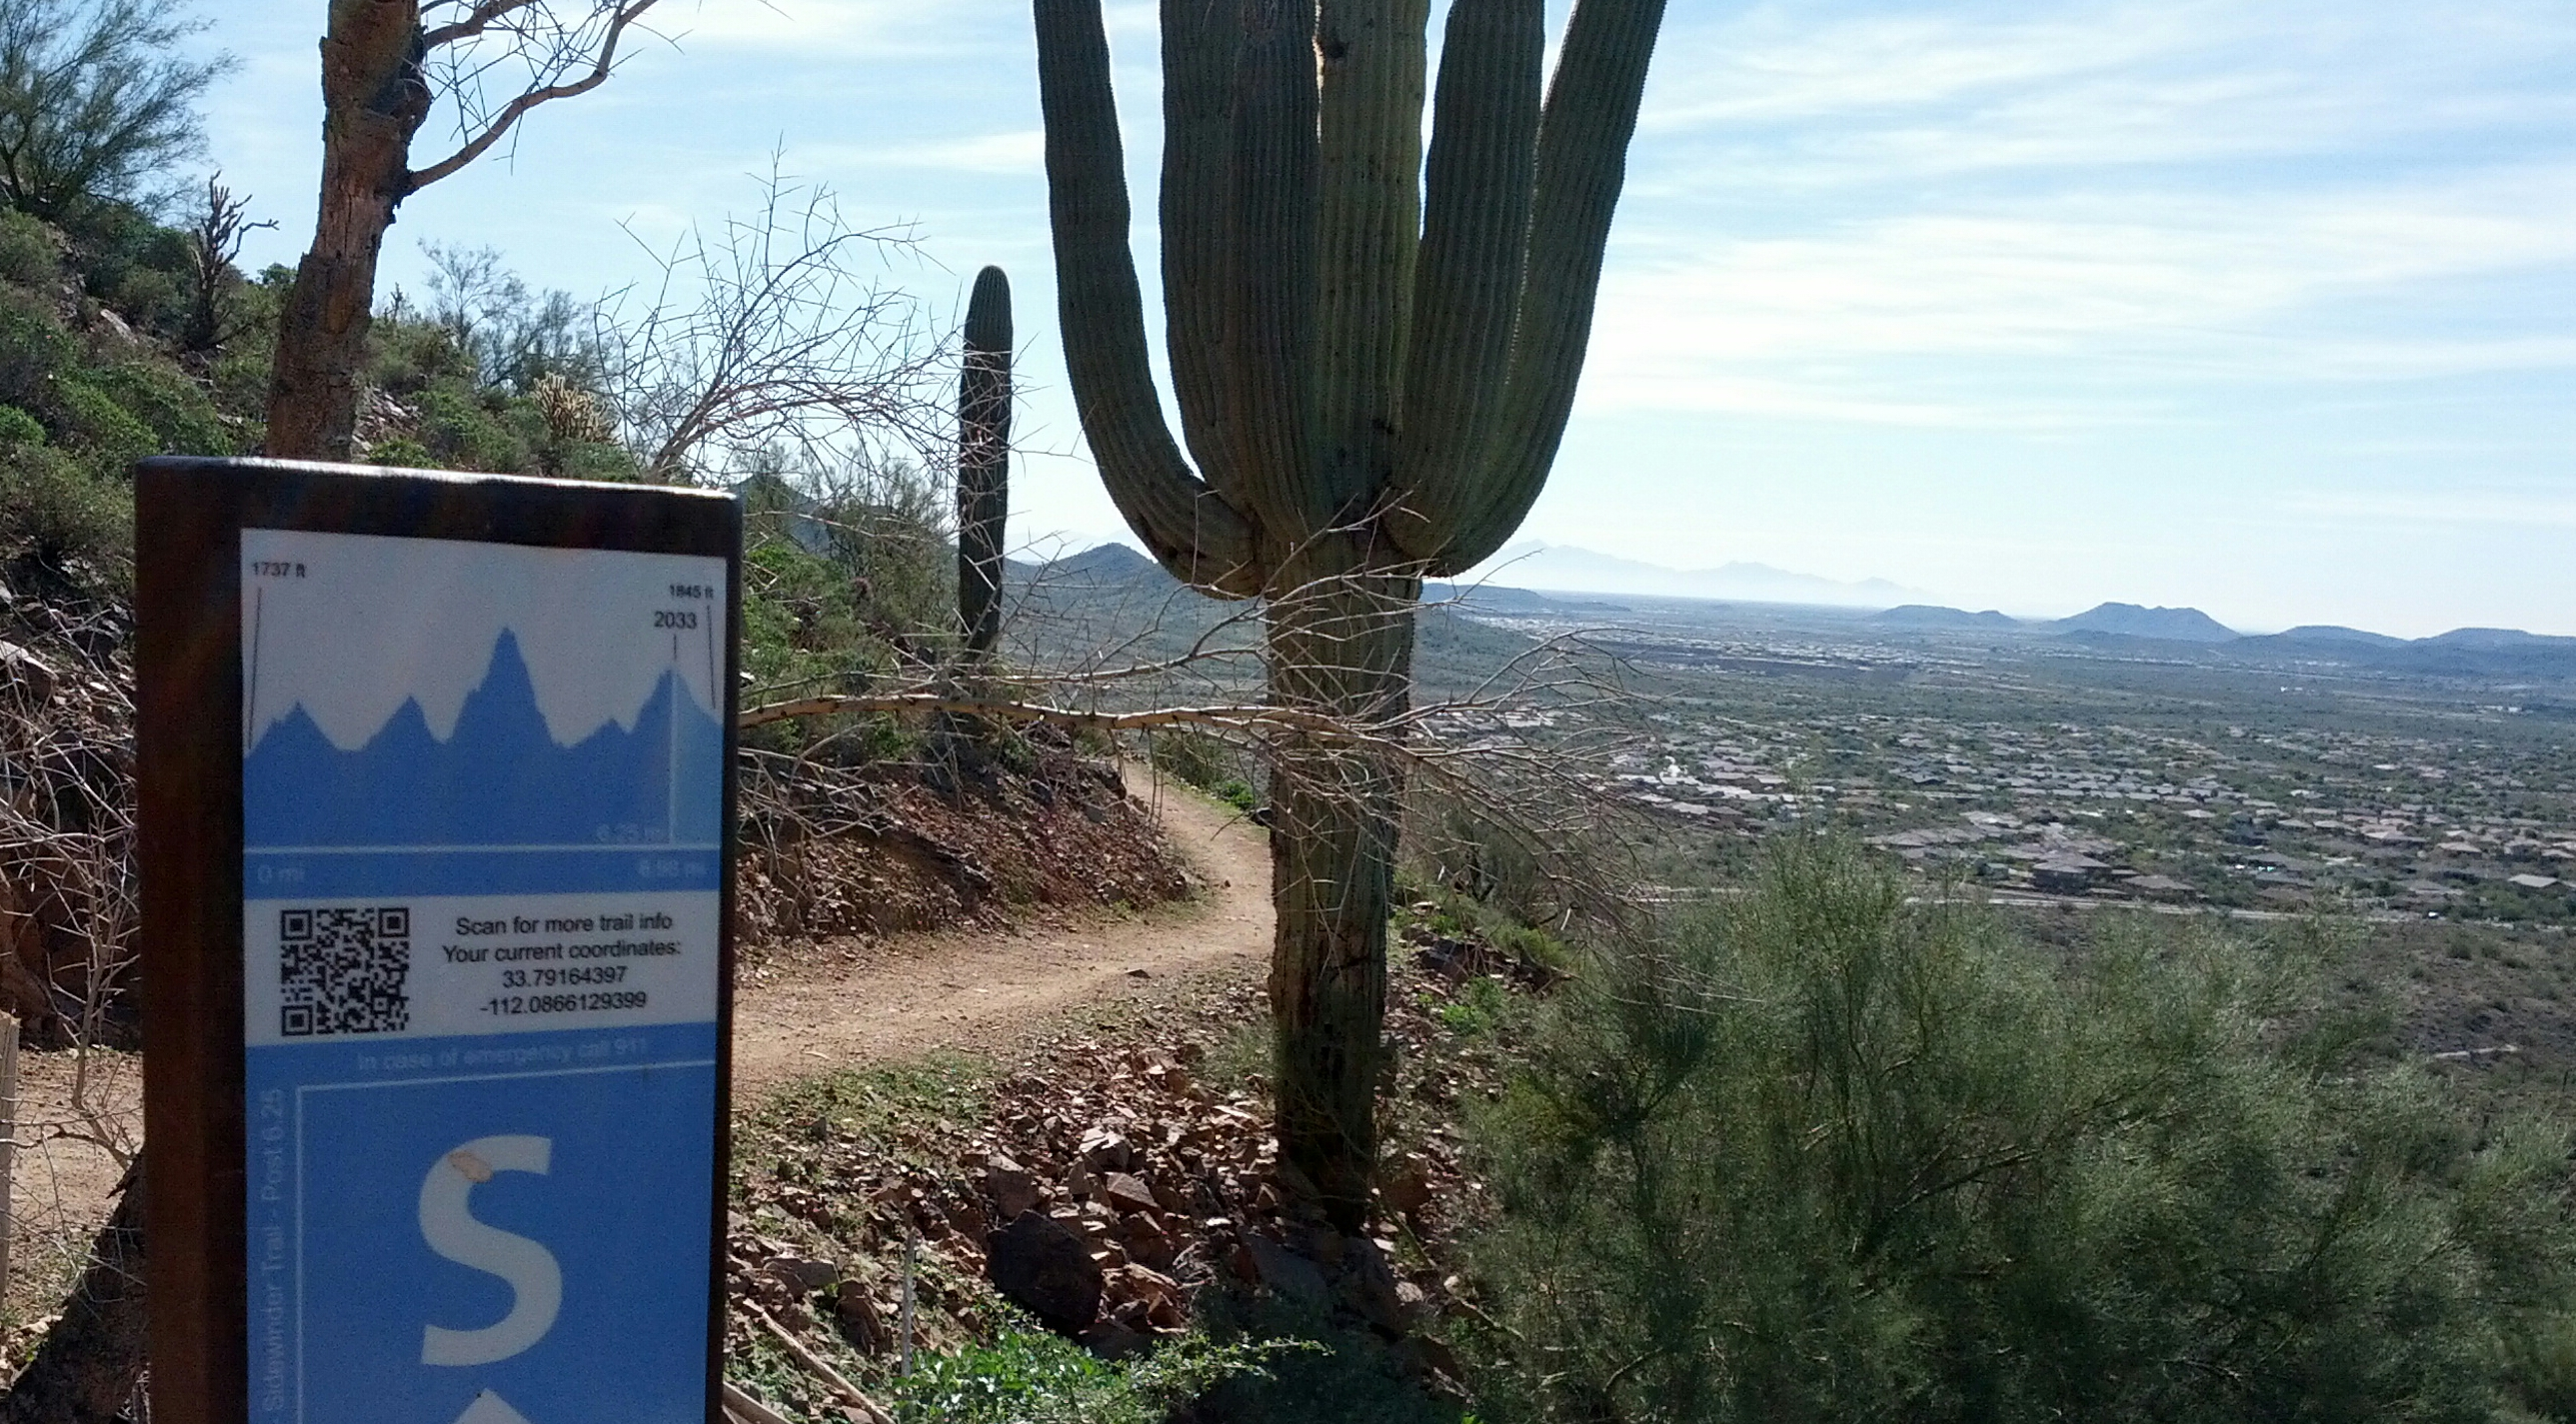 Sidwinder Trail in the Phoenix Sonoran Preserve